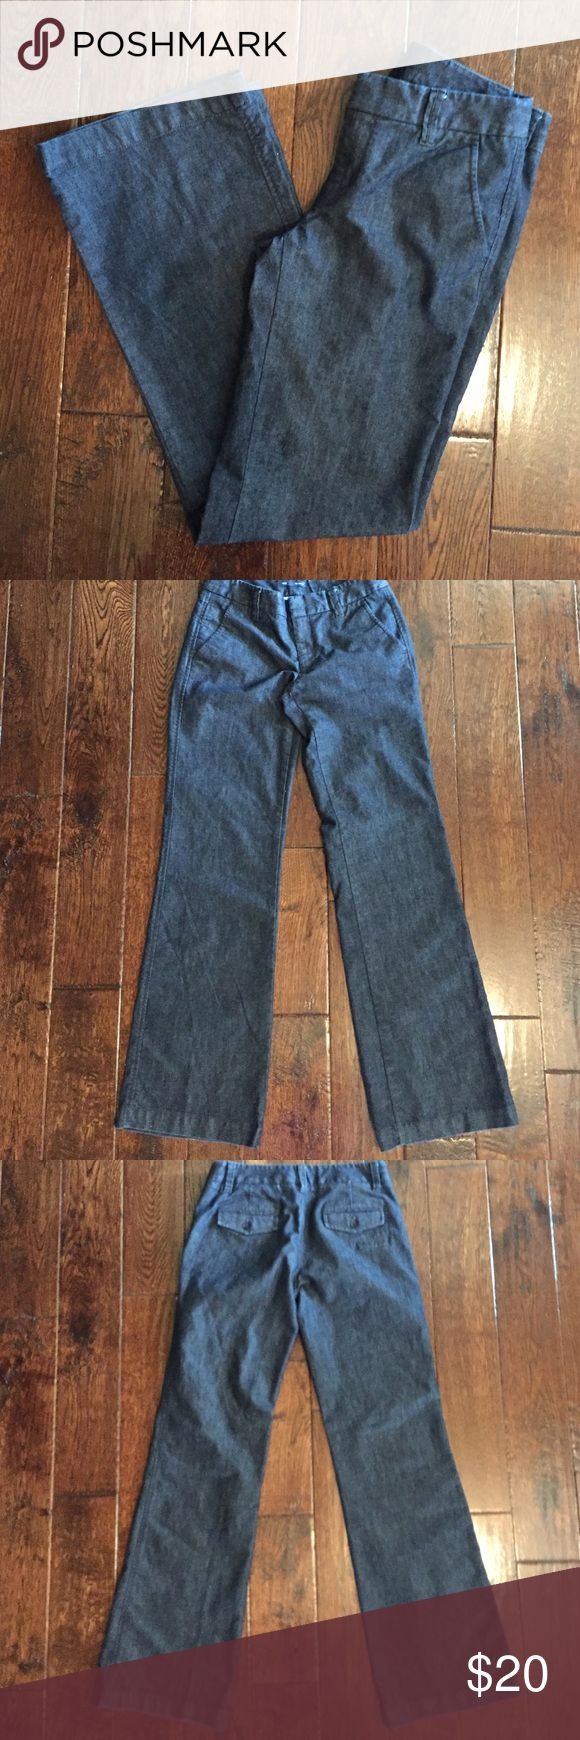 Gap Denim Trousers Gap trouser, size 2 long, inseam approx 34 inches, 84% cotton, 16% elasterell-p Gap Jeans